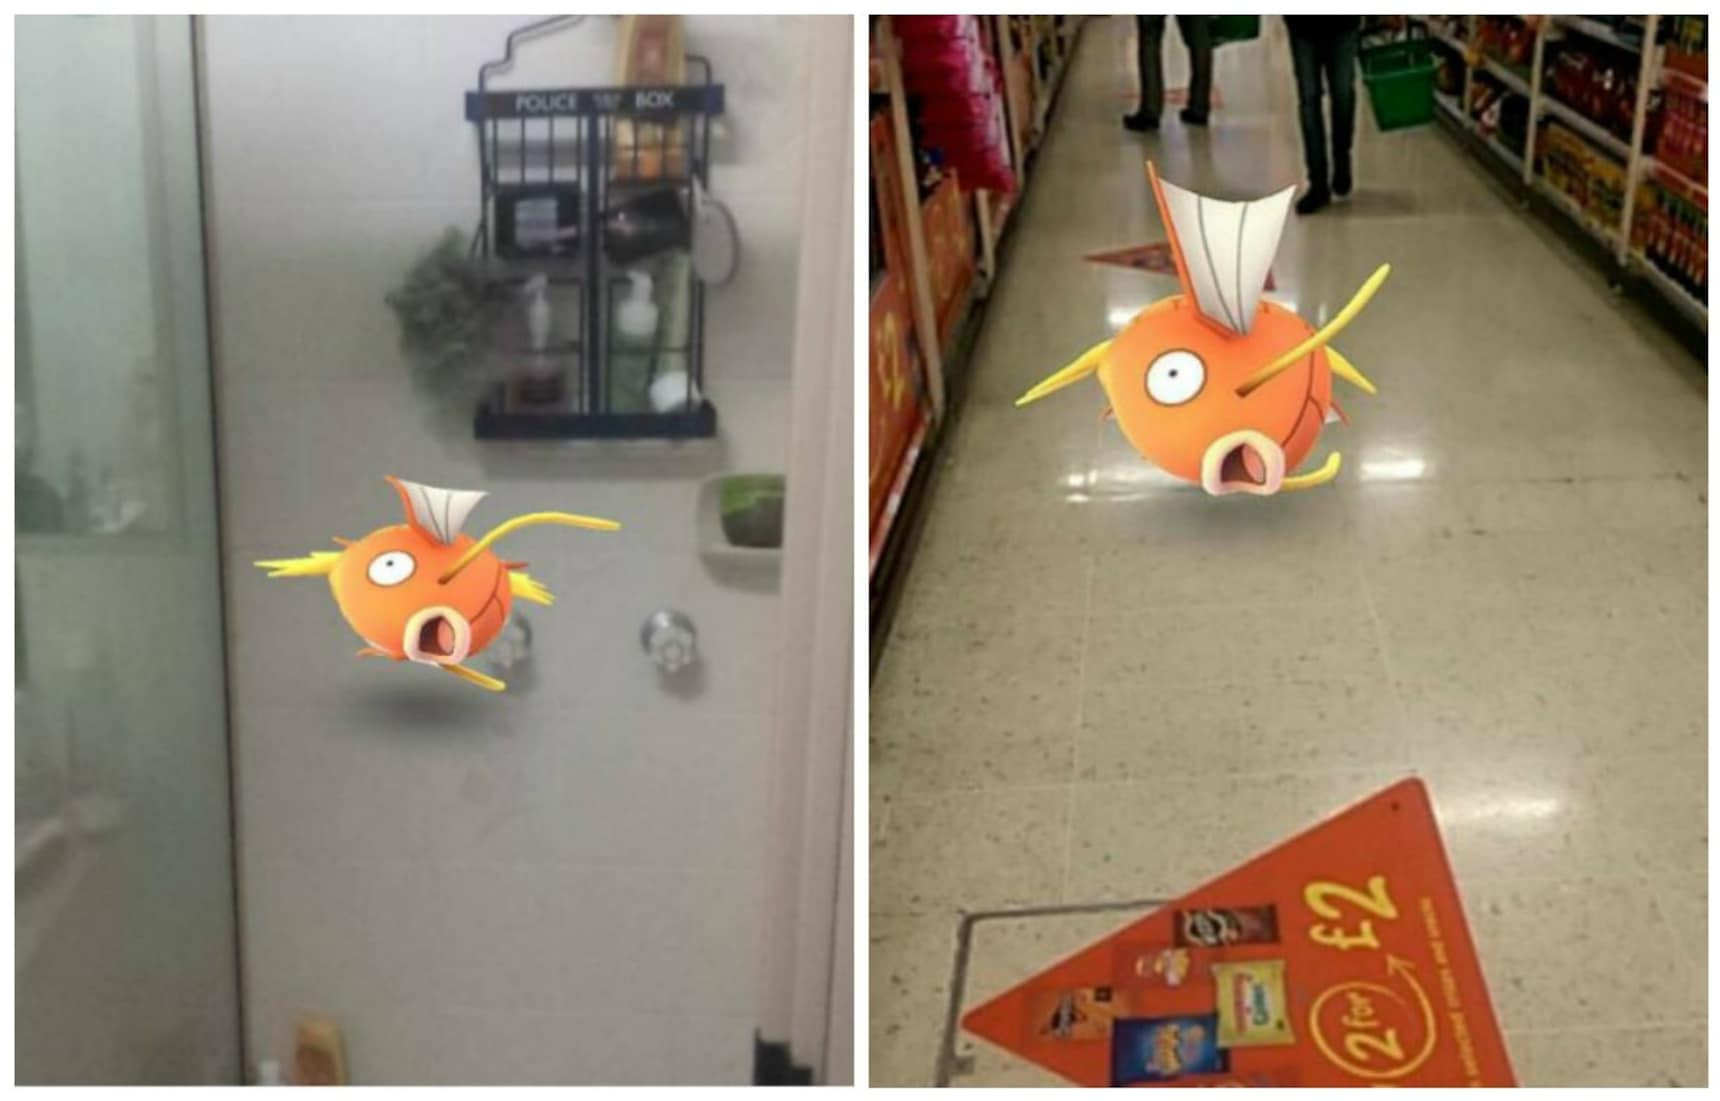 Magikarp Appears in Undignified Places